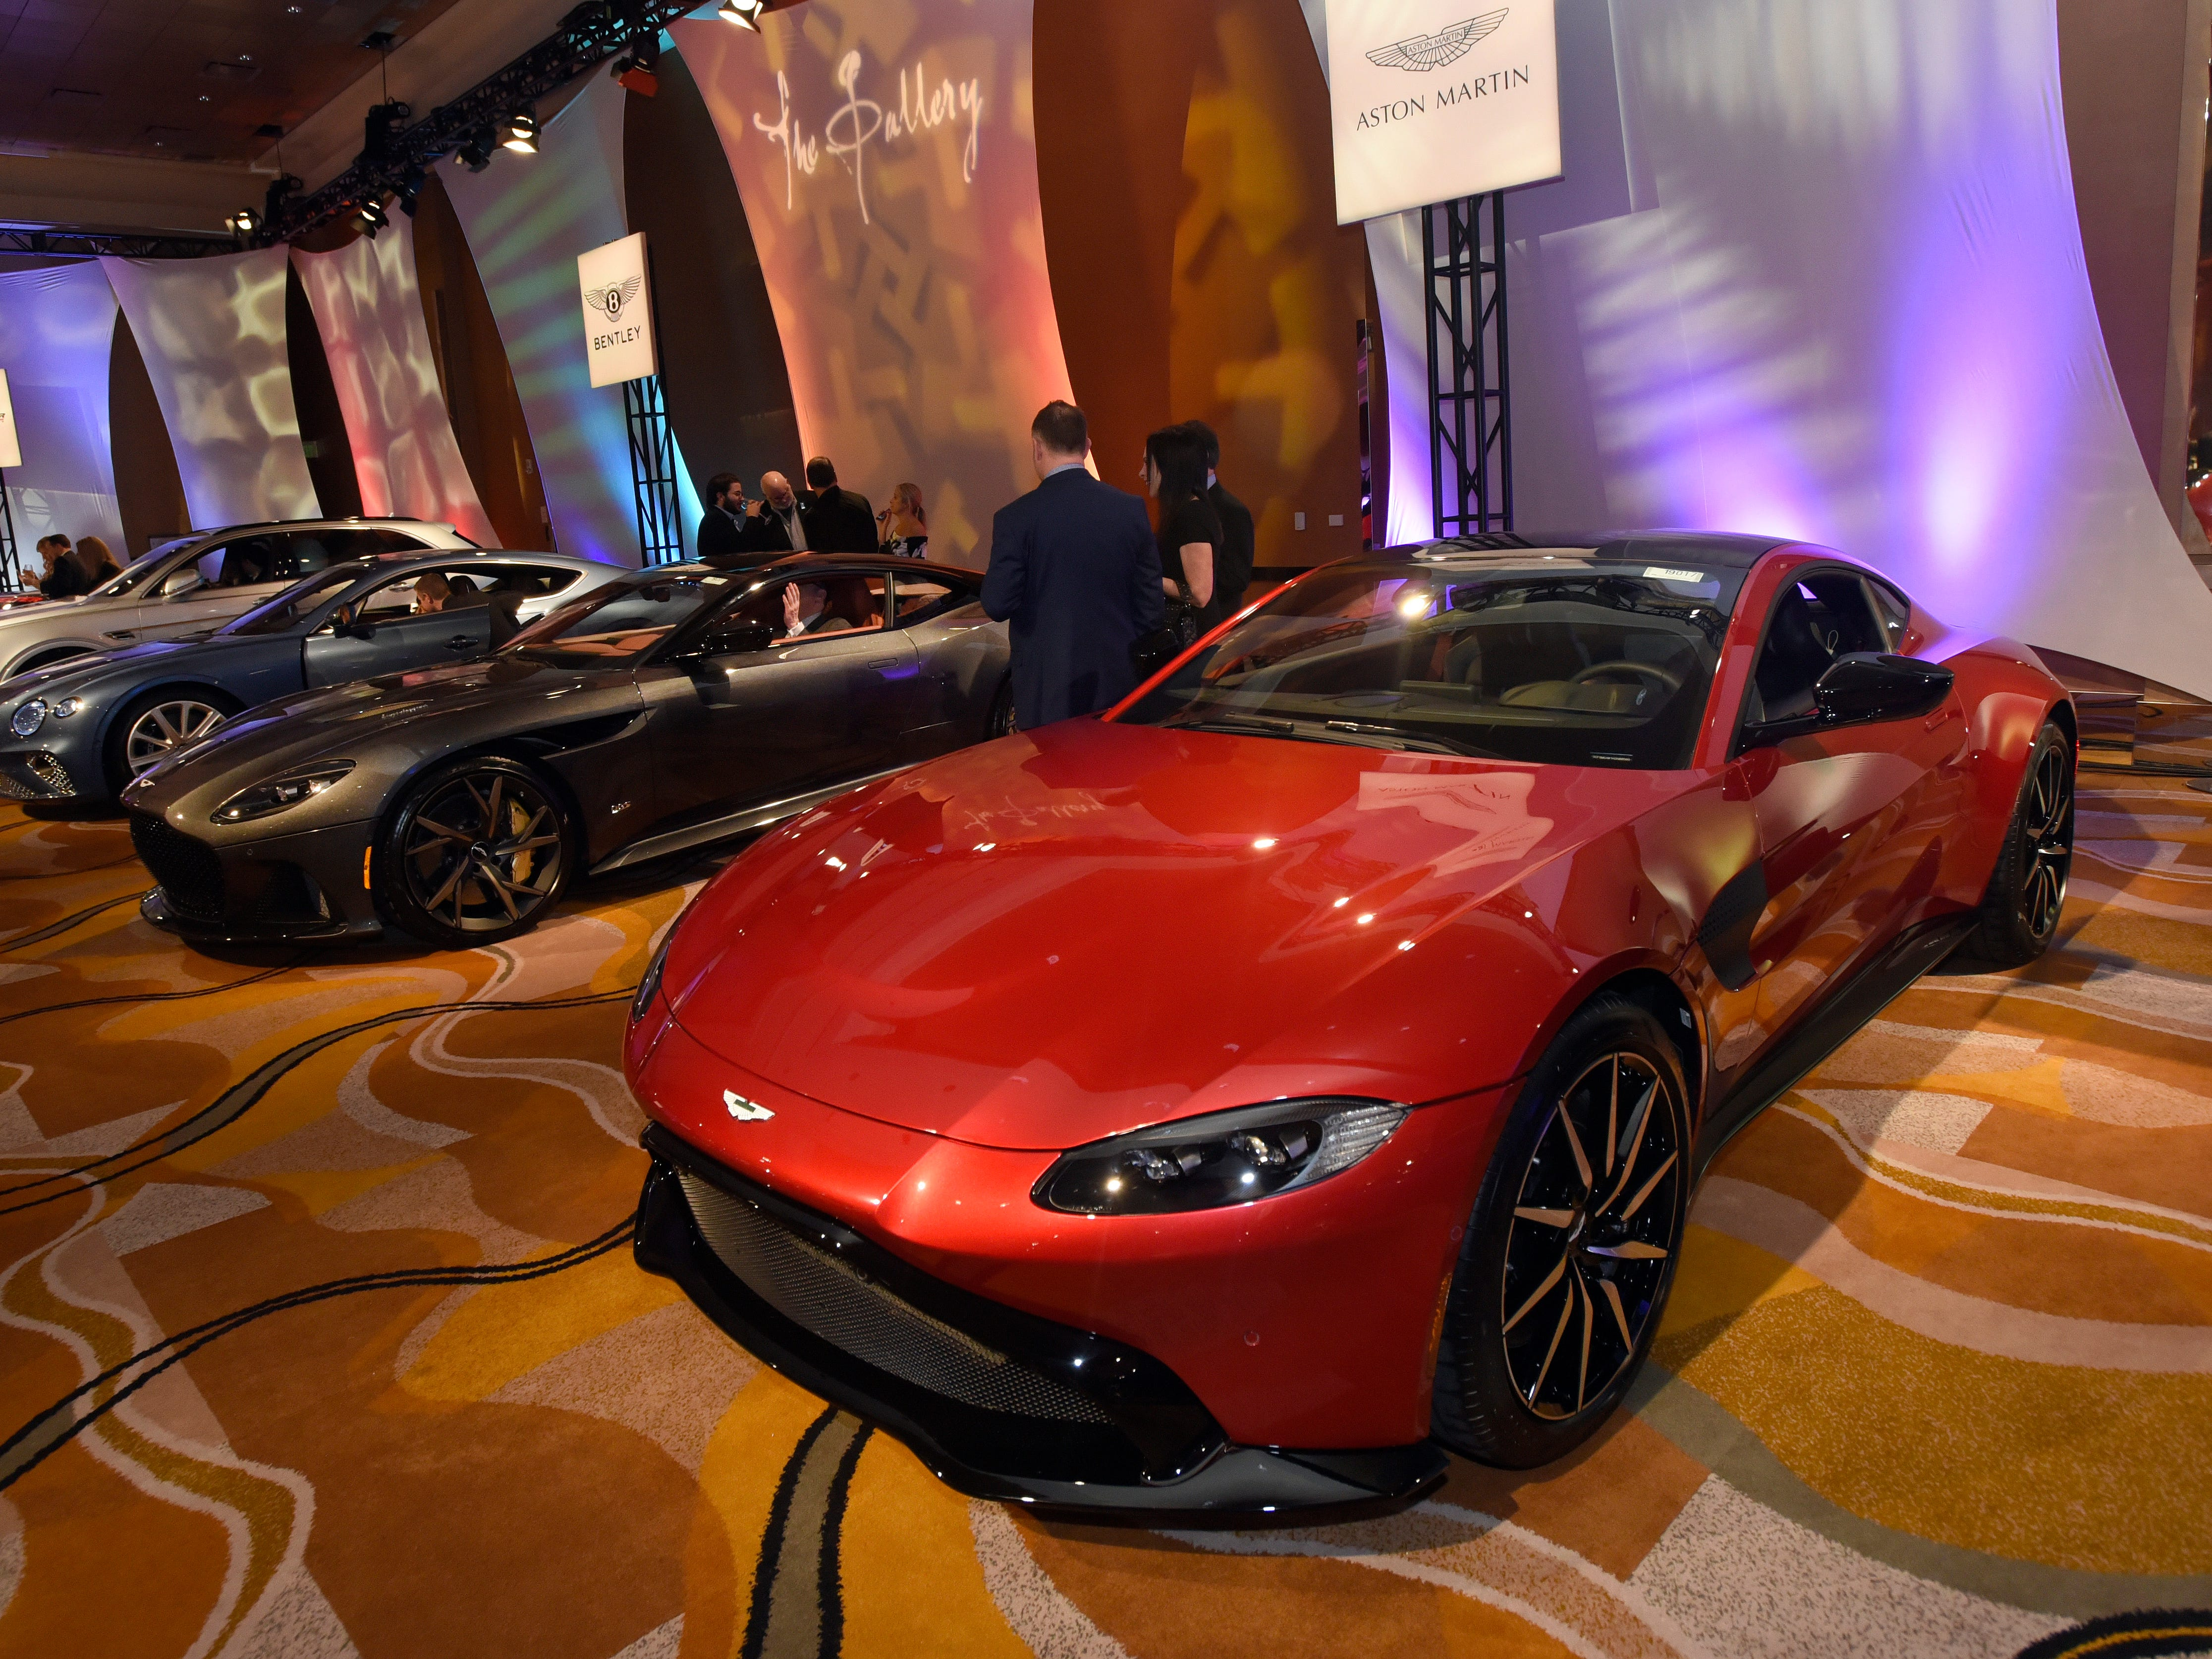 Two Aston Martin vehicles are on display at The Gallery.